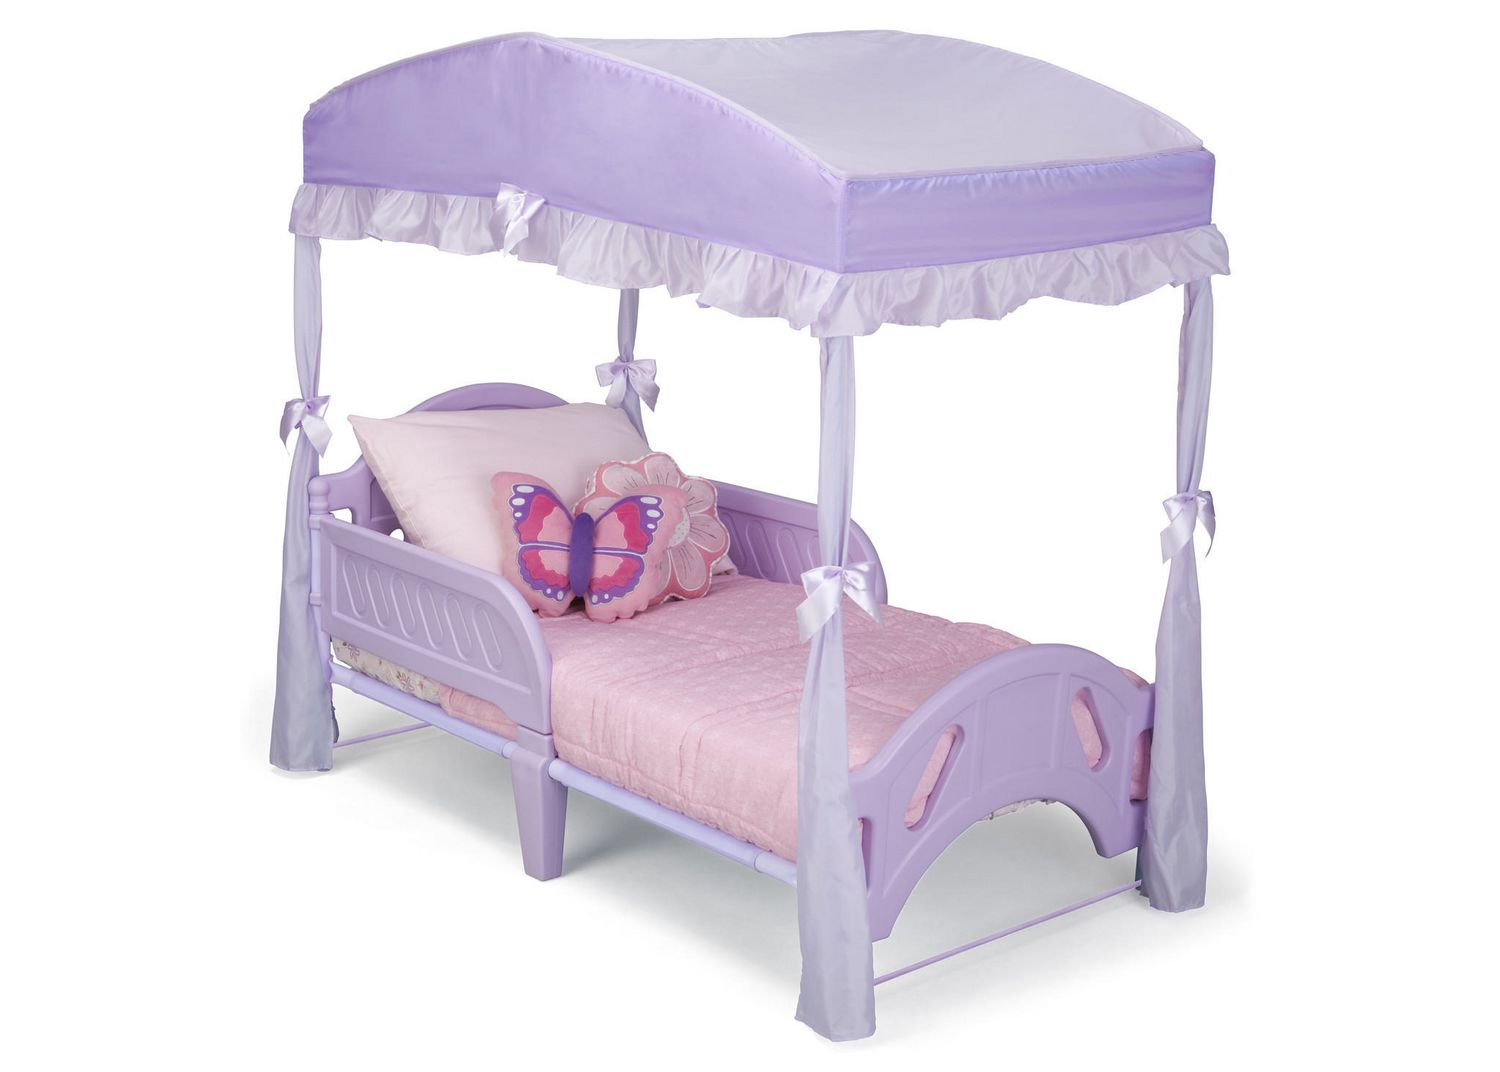 - Decorative Canopy For Toddler Bed By Delta Children Walmart Canada